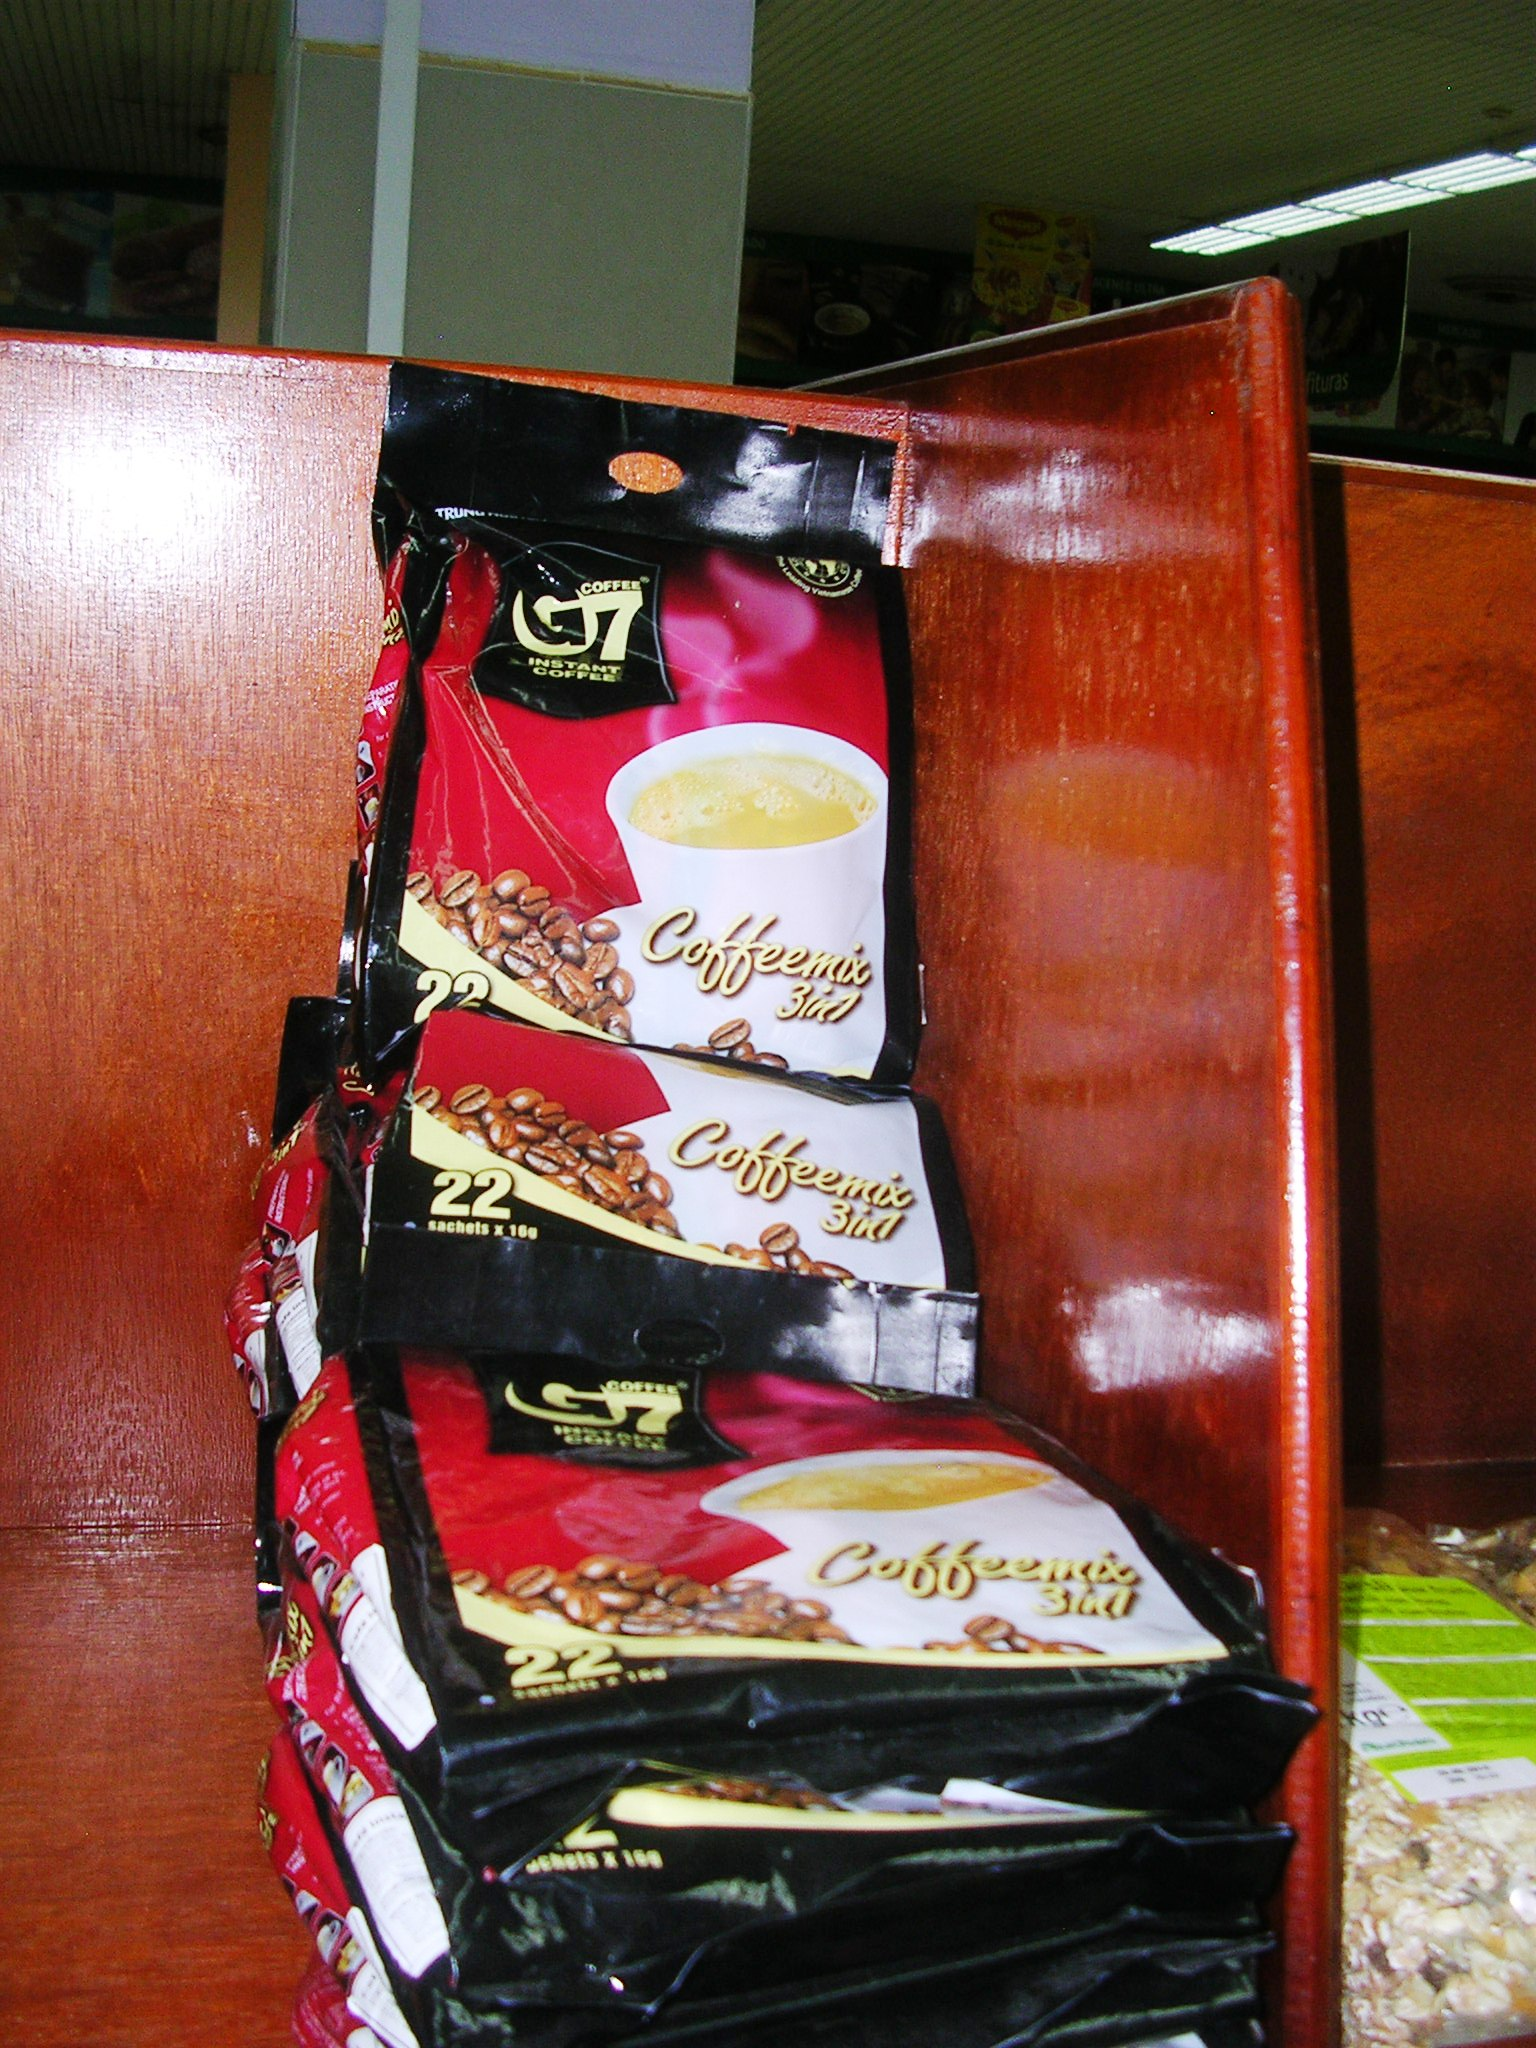 Cuba provided technical assistance to vietnam s coffee sector in the 1970s now vietnam is the world s second largest producer while cuba s coffee